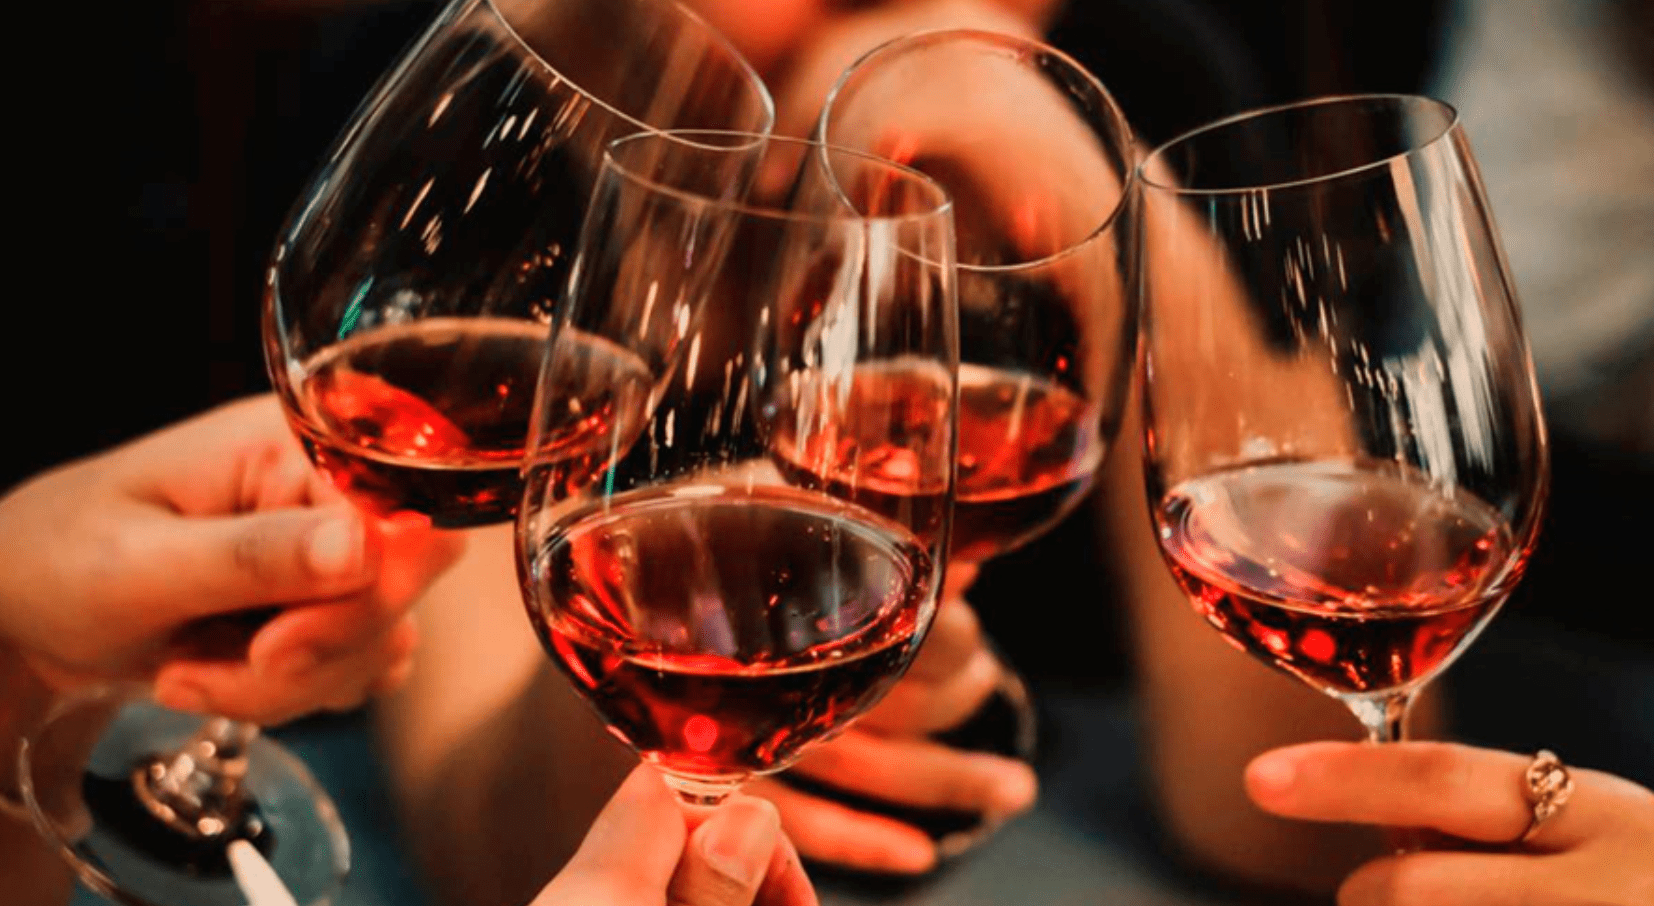 A wine that eludes the breathalyzer